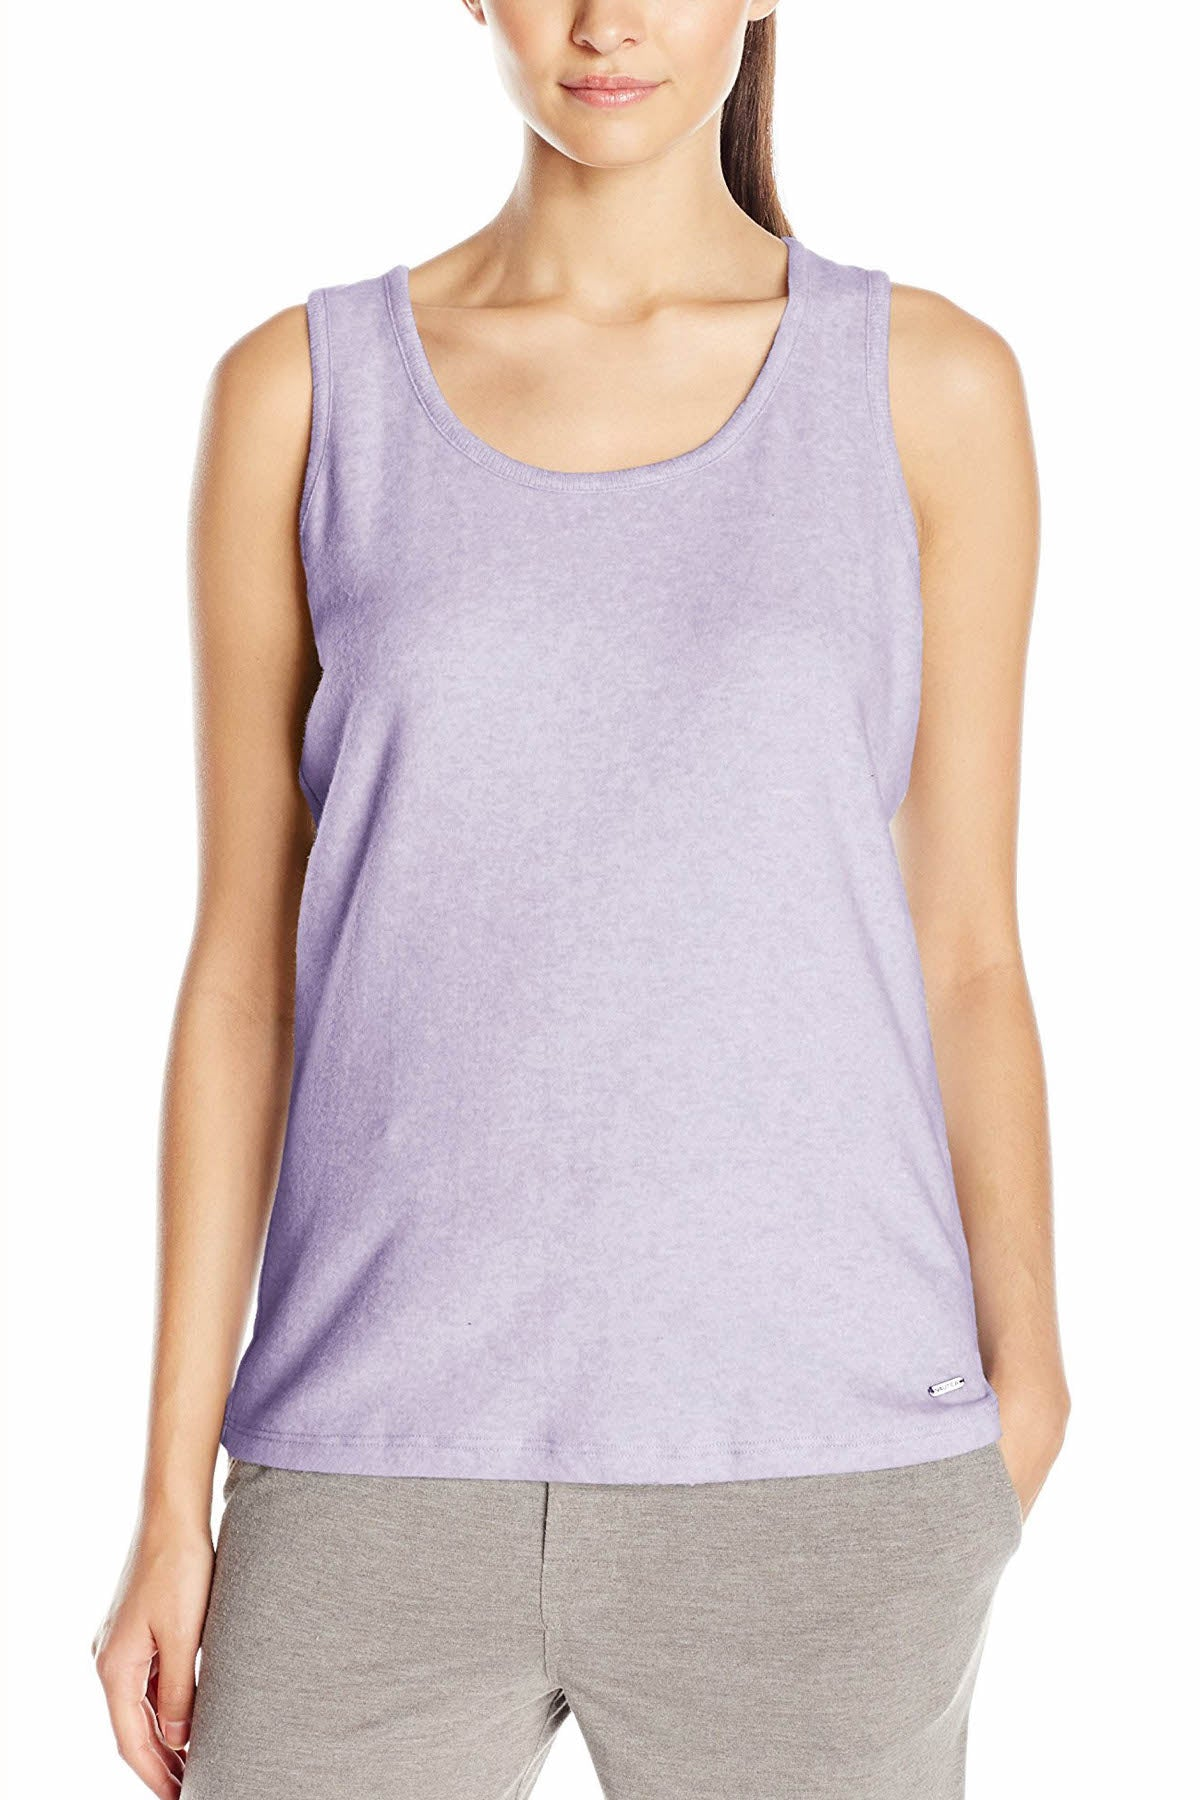 Nautica Heather-Lavender Sweater-Knit Lounge Tank